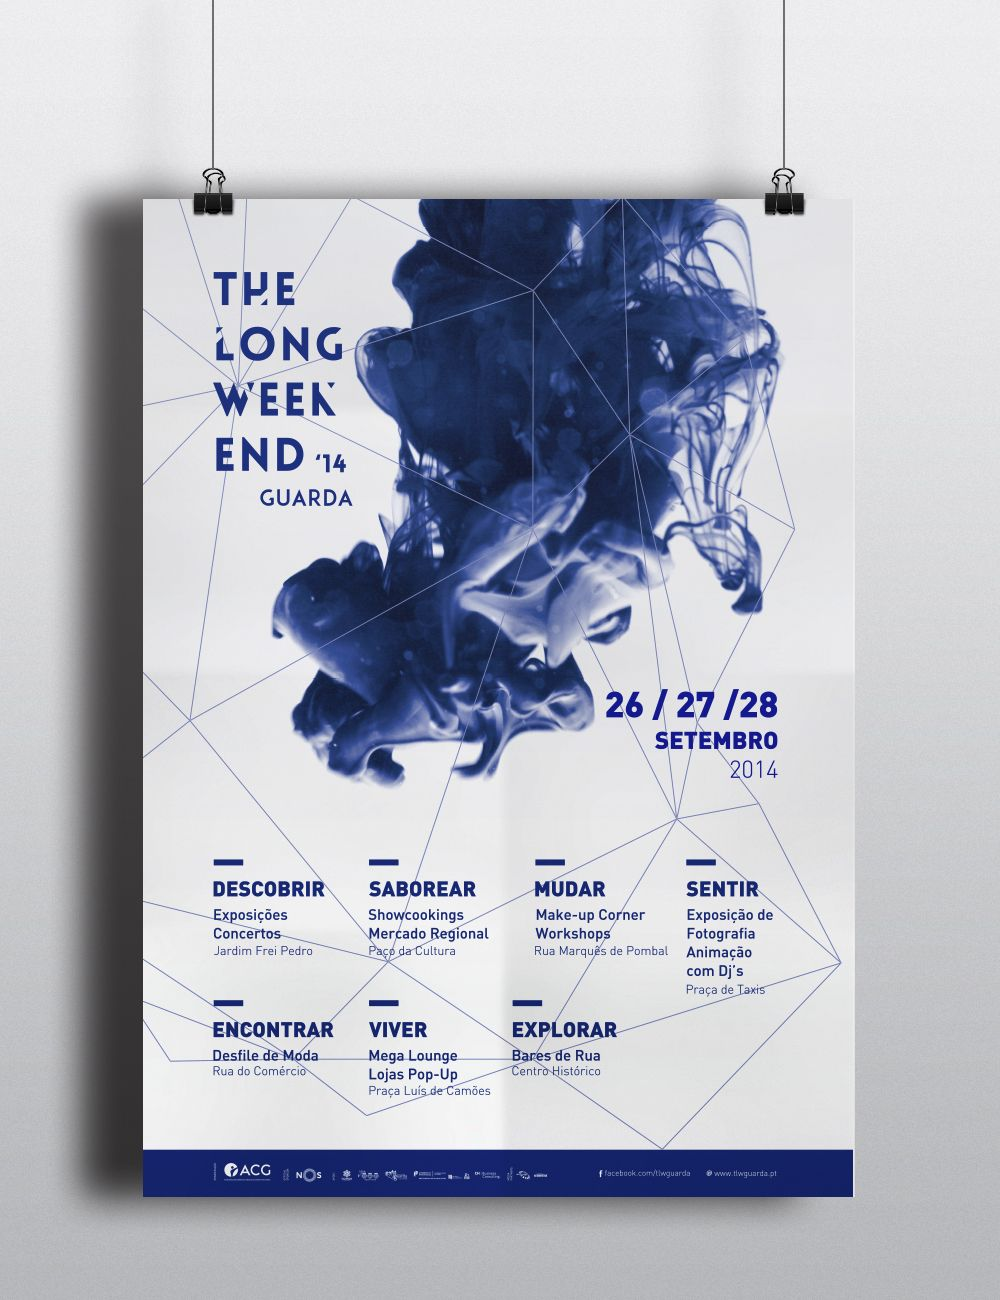 THE LONG WEEKEND / Visual Identity on Behance